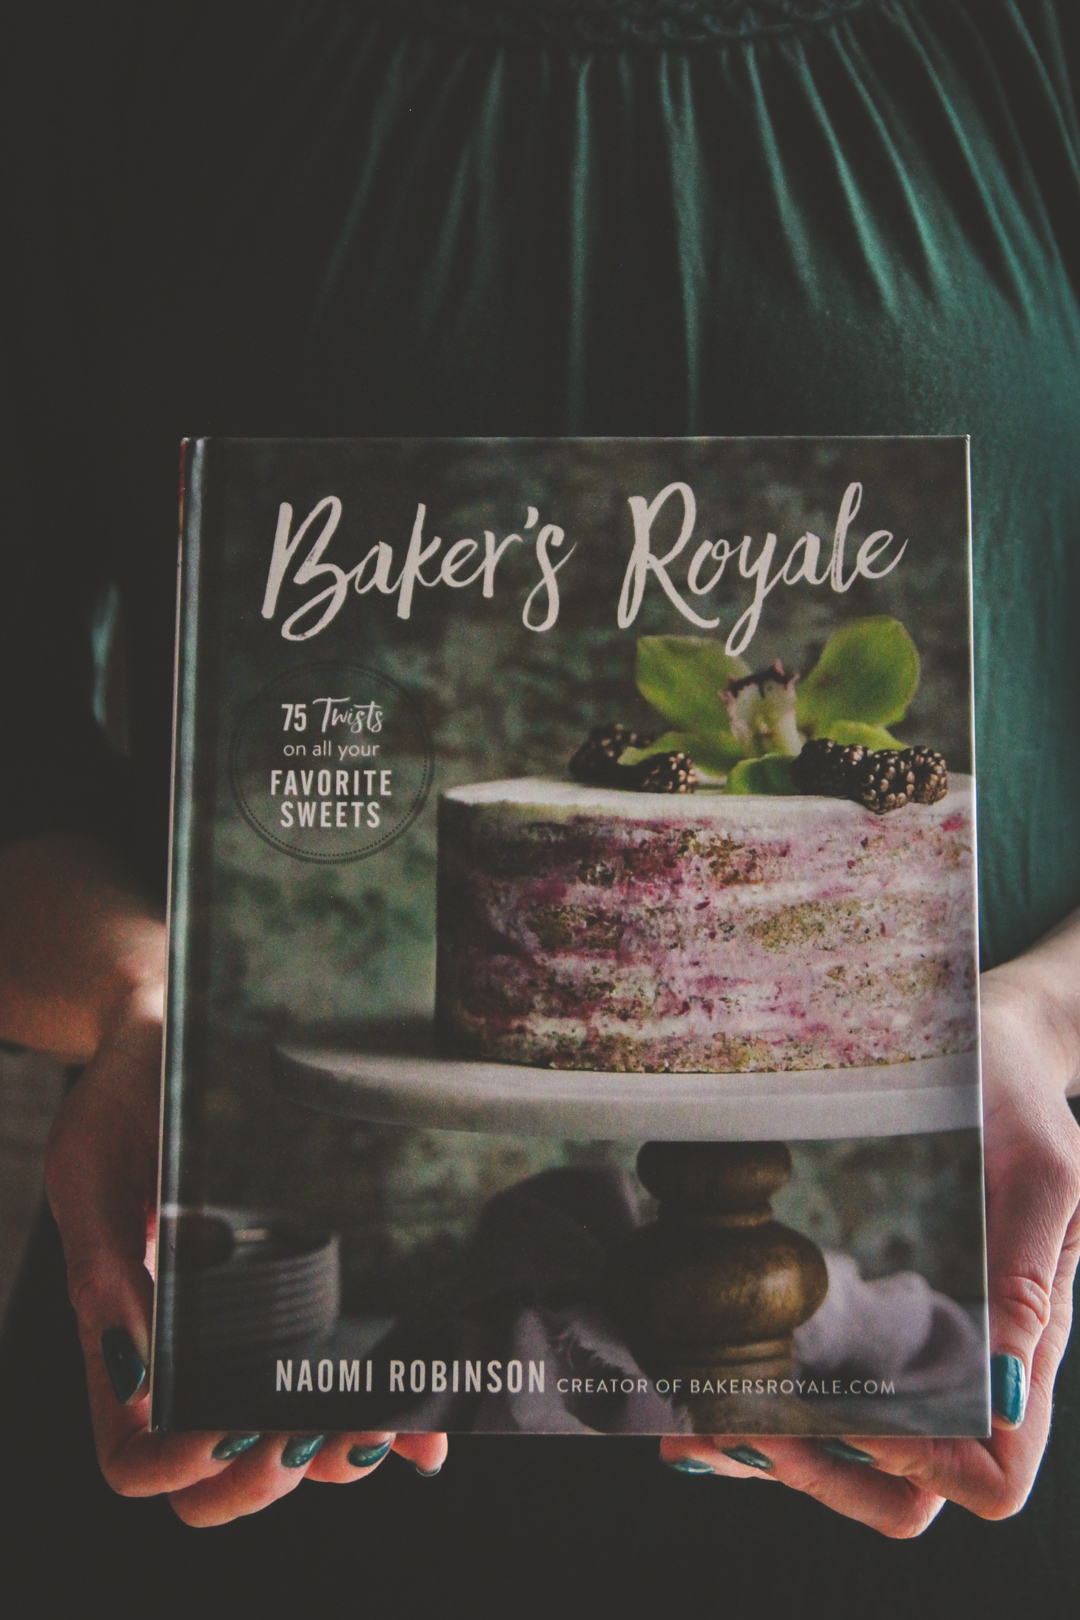 Baker's Royale cookbook